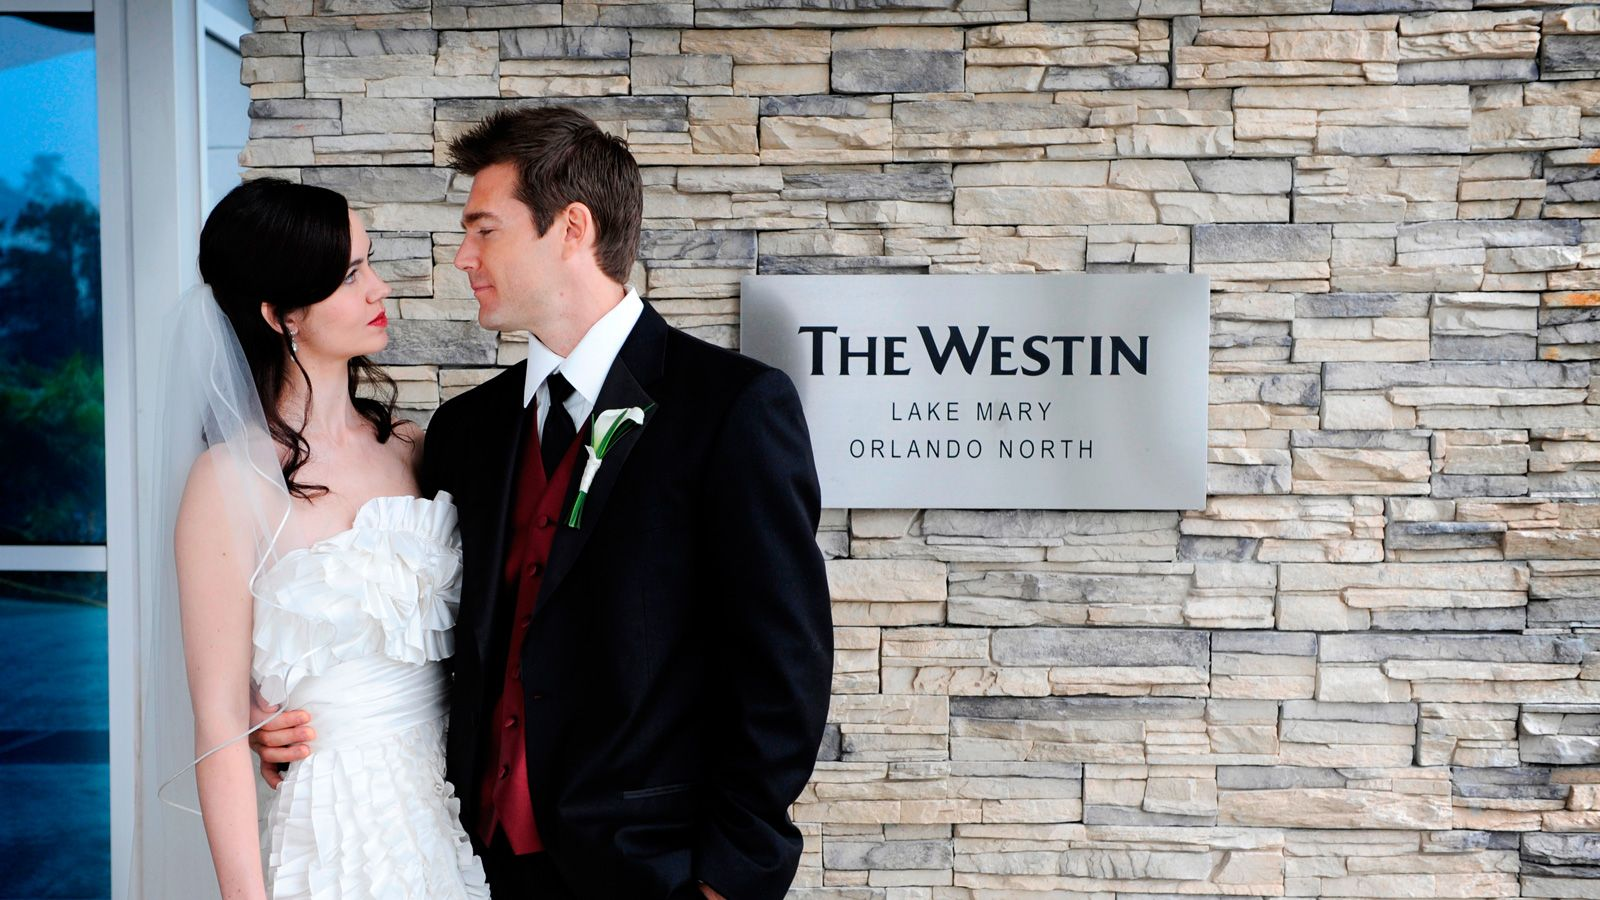 Orlando Wedding Venue | The Westin Lake Mary, Orlando North Hotel